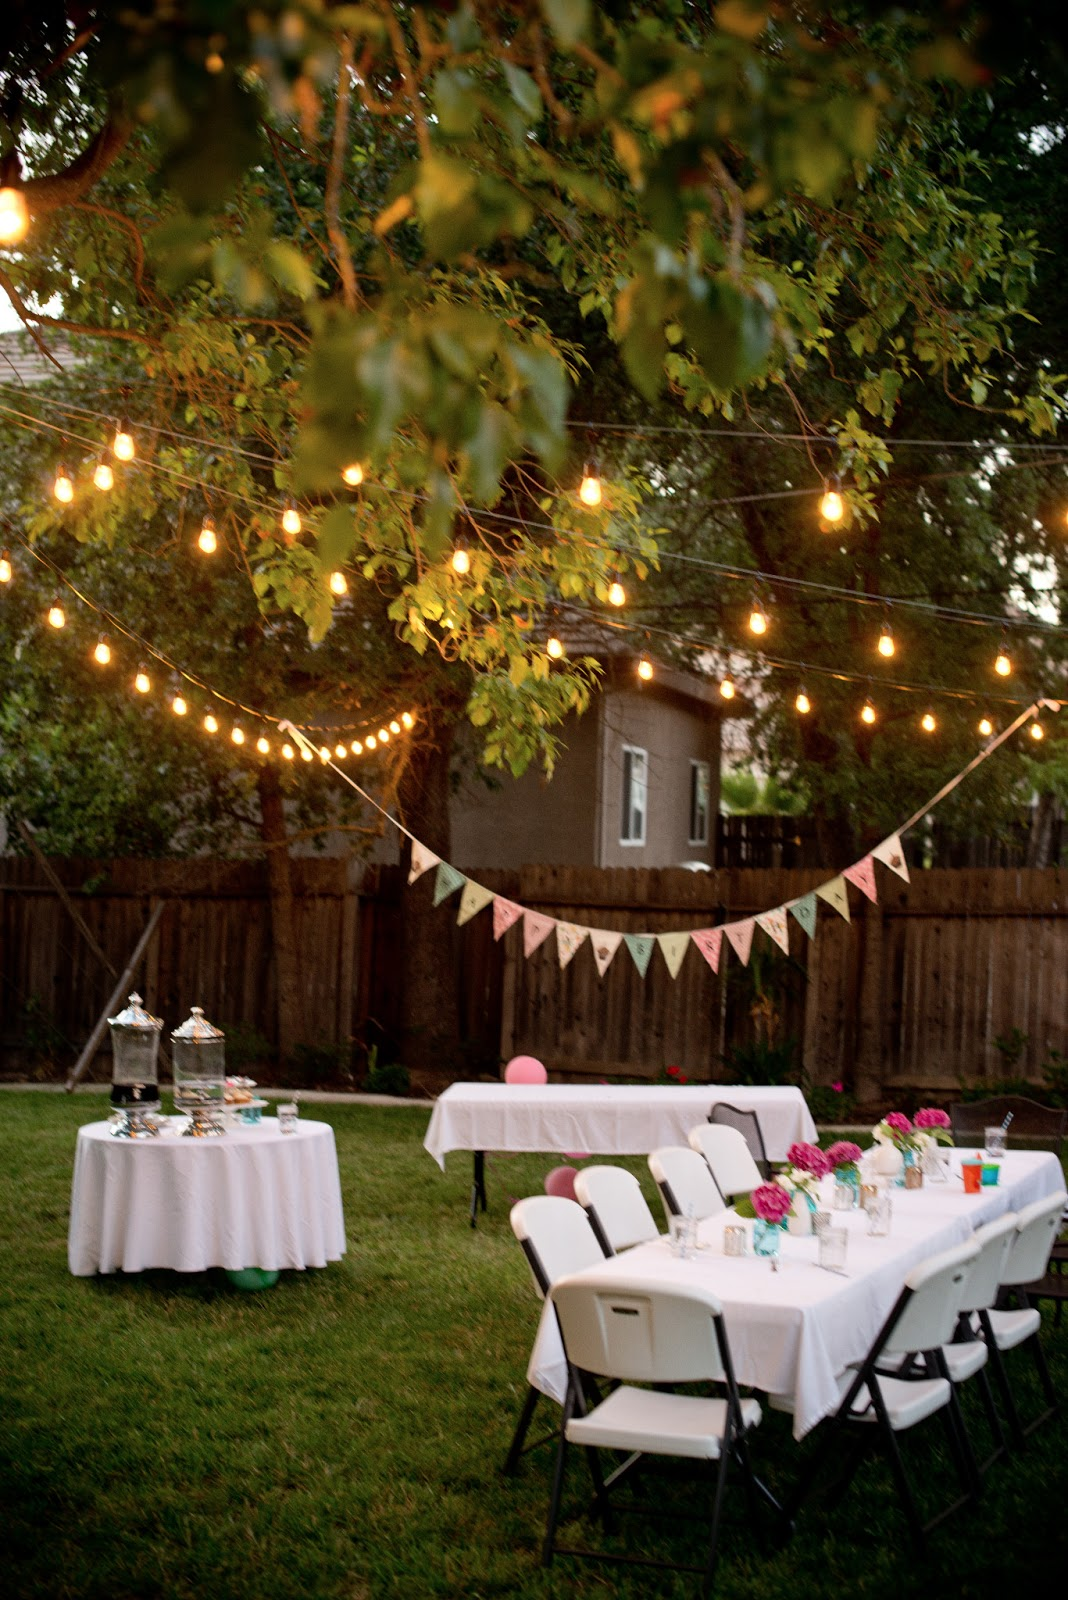 outdoor party lights ideas photo - 5